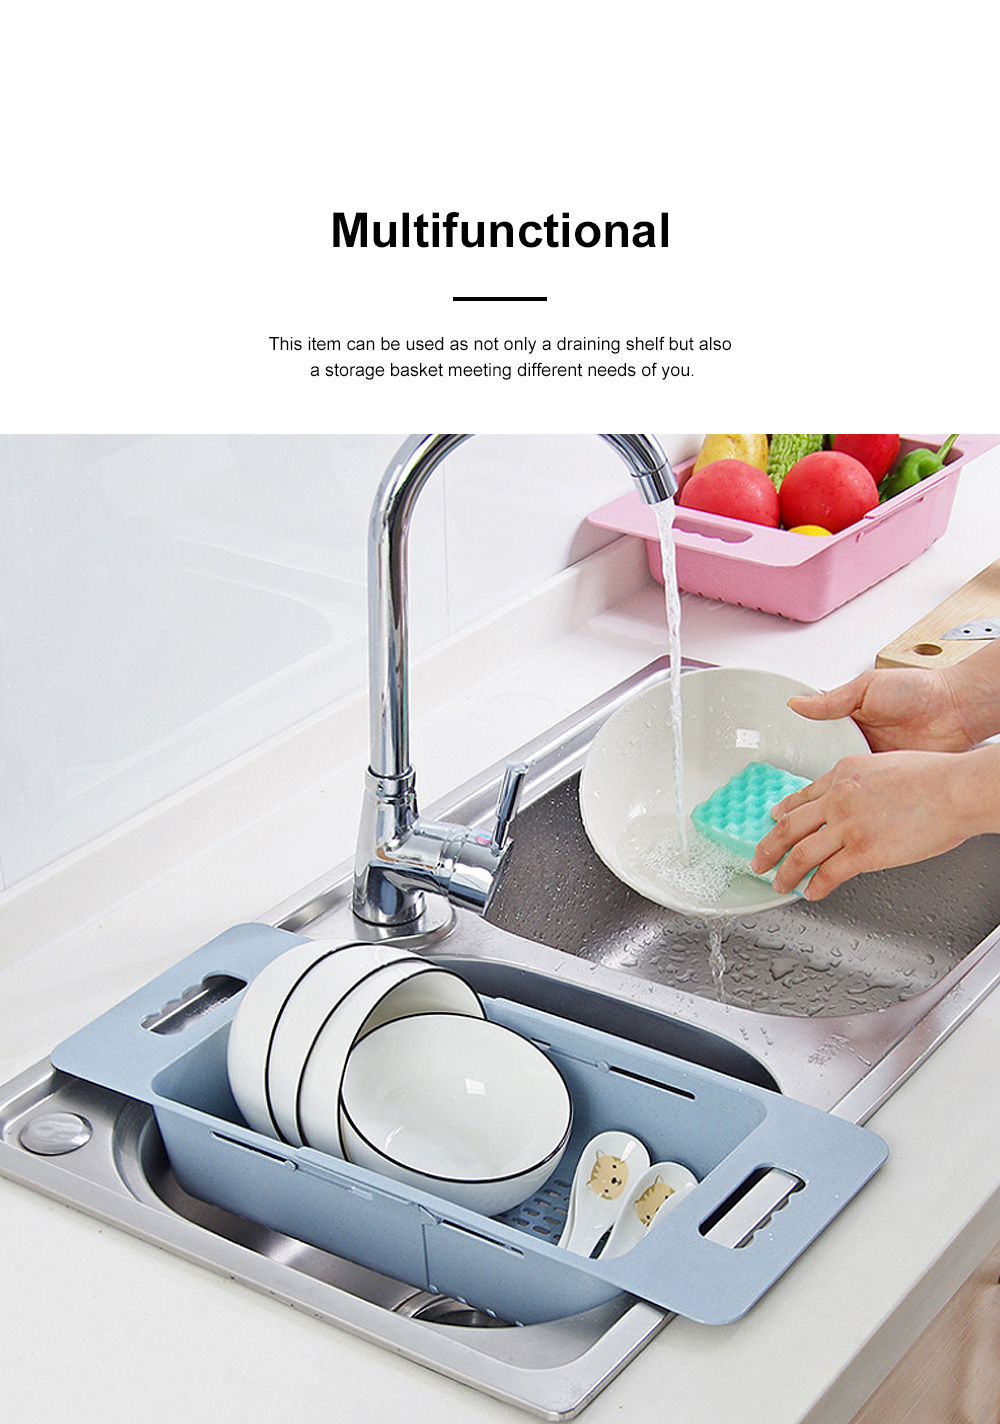 Functional Environmentally-friendly Wheat Straw Stretchable Vegetable Fruit Water Sink Draining Shelf Basket Storage Rack 2